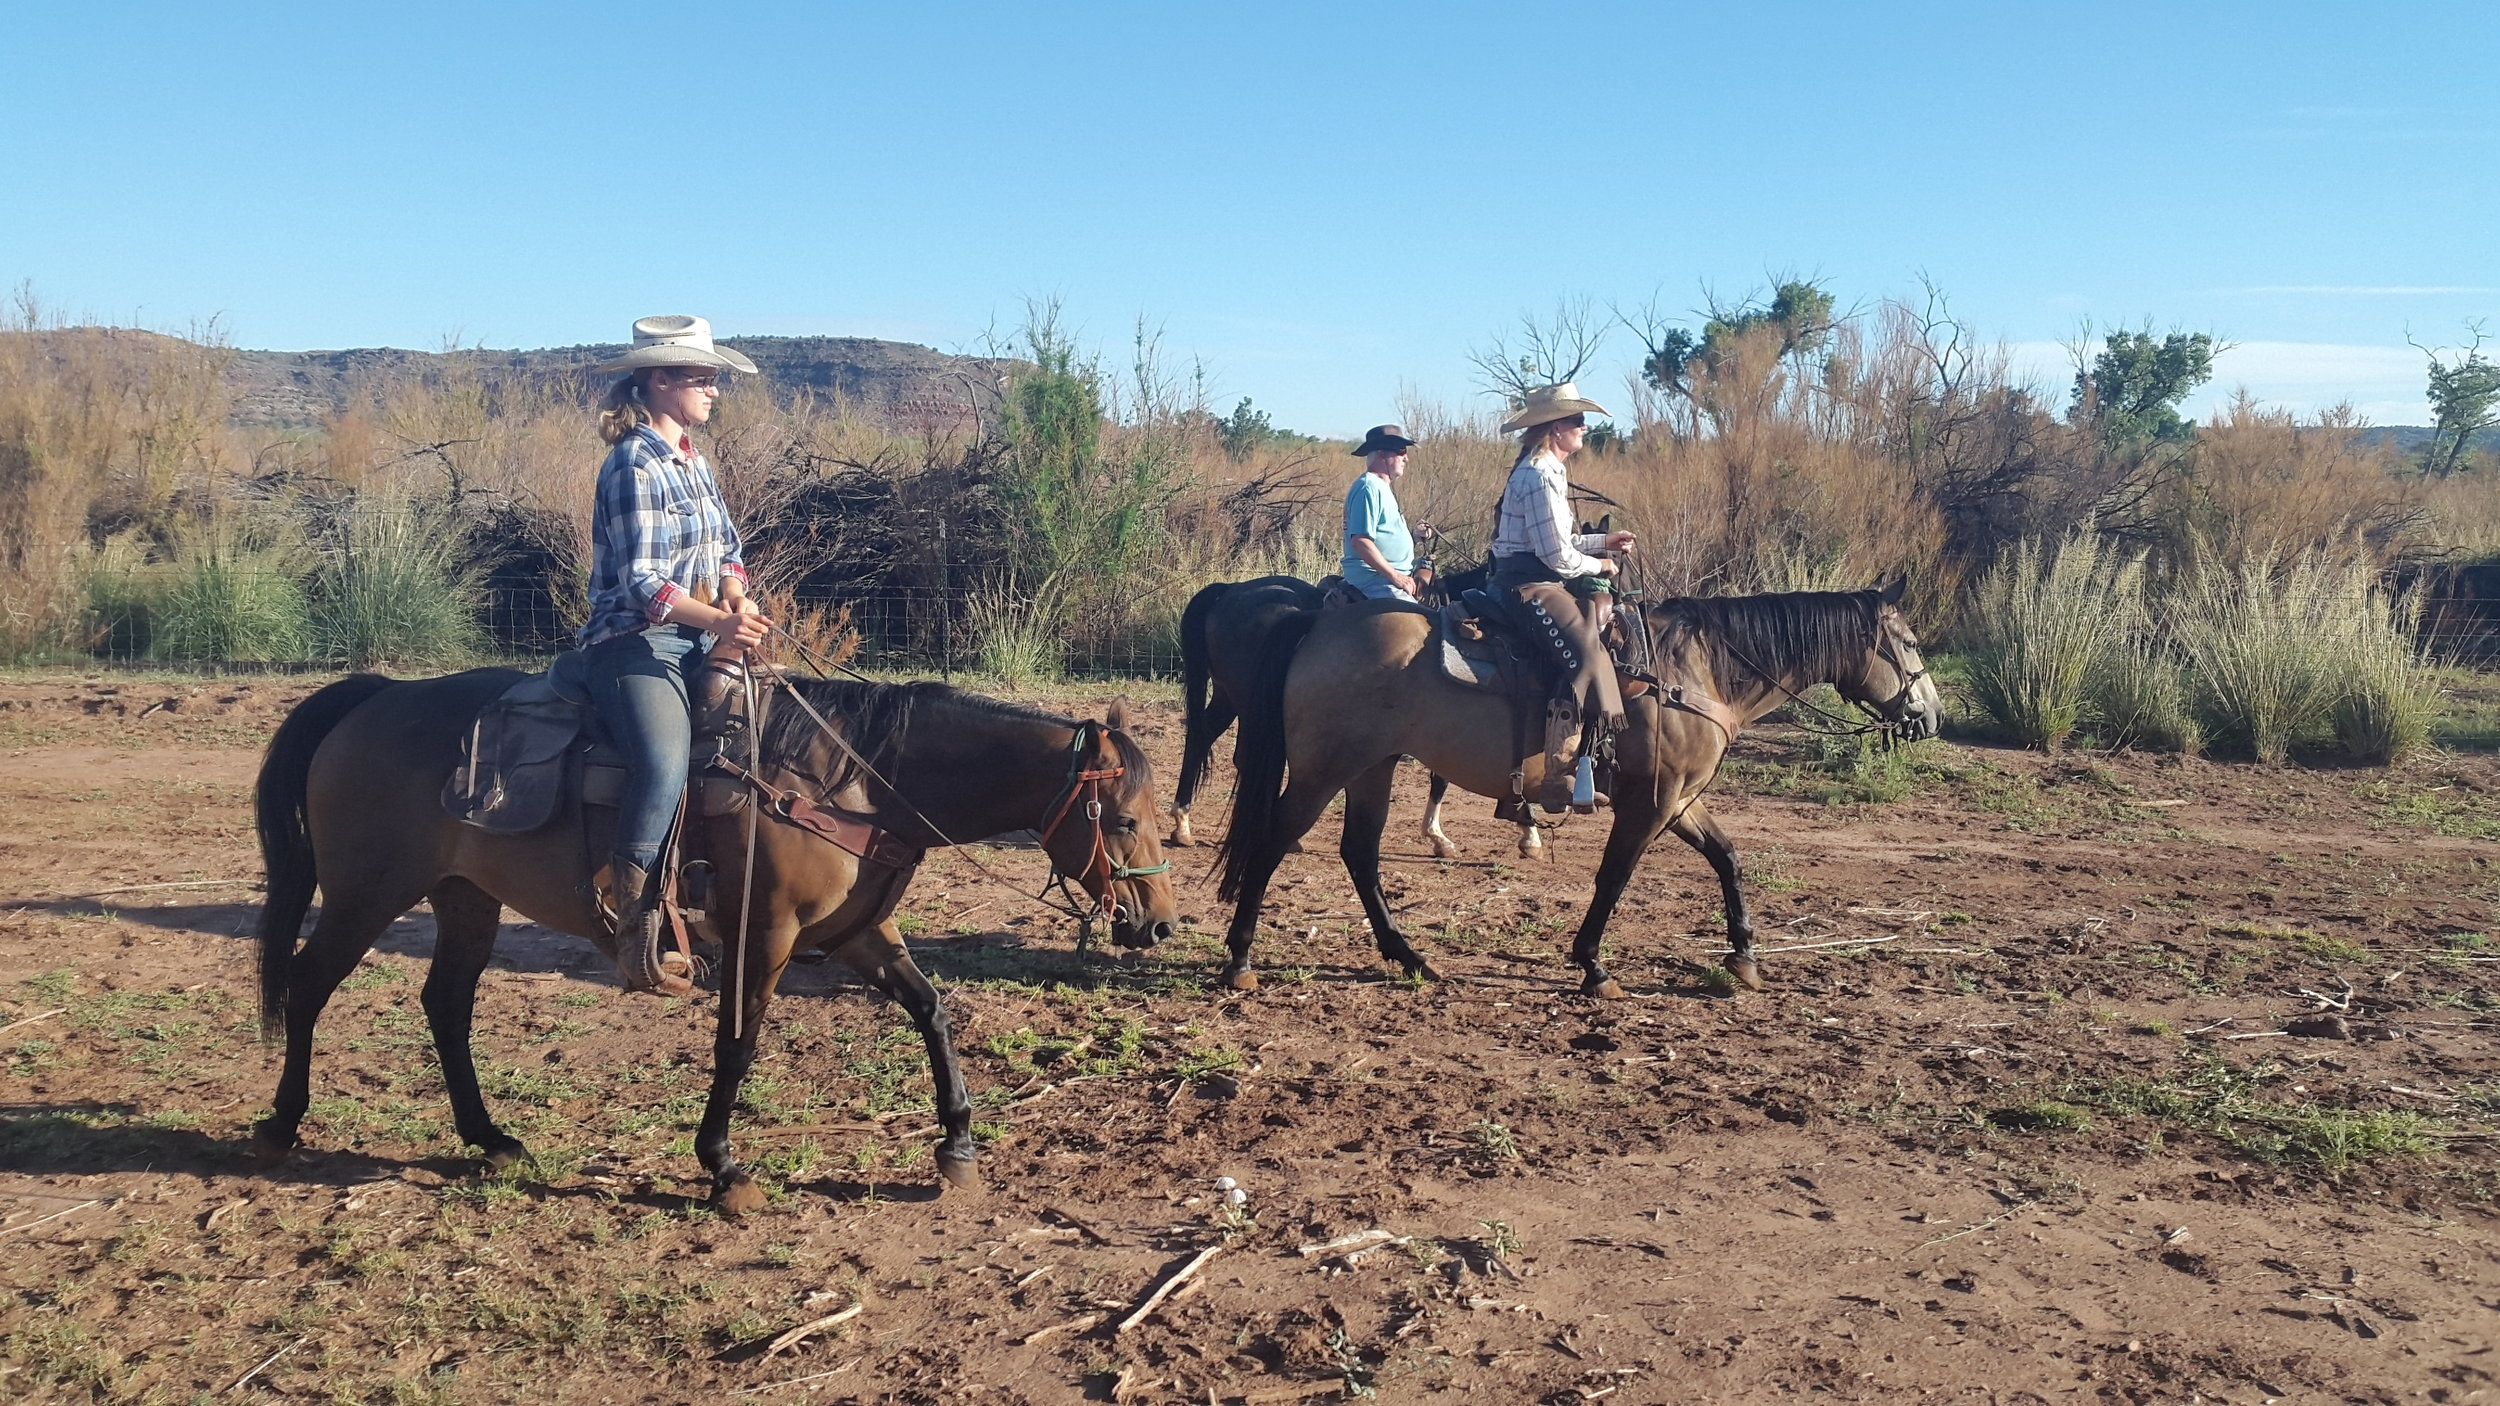 The next day we headed out to the river pasture. On the way to the cattle (left to right): Leonie on Robin, I on King and Stu on Ricky.  Am nächsten Tag waren wir in der Flussweide unterwegs. Auf dem Weg zu den Rindern (von links nach rechts): Leonie auf Robin, ich auf King und Stu auf Ricky.